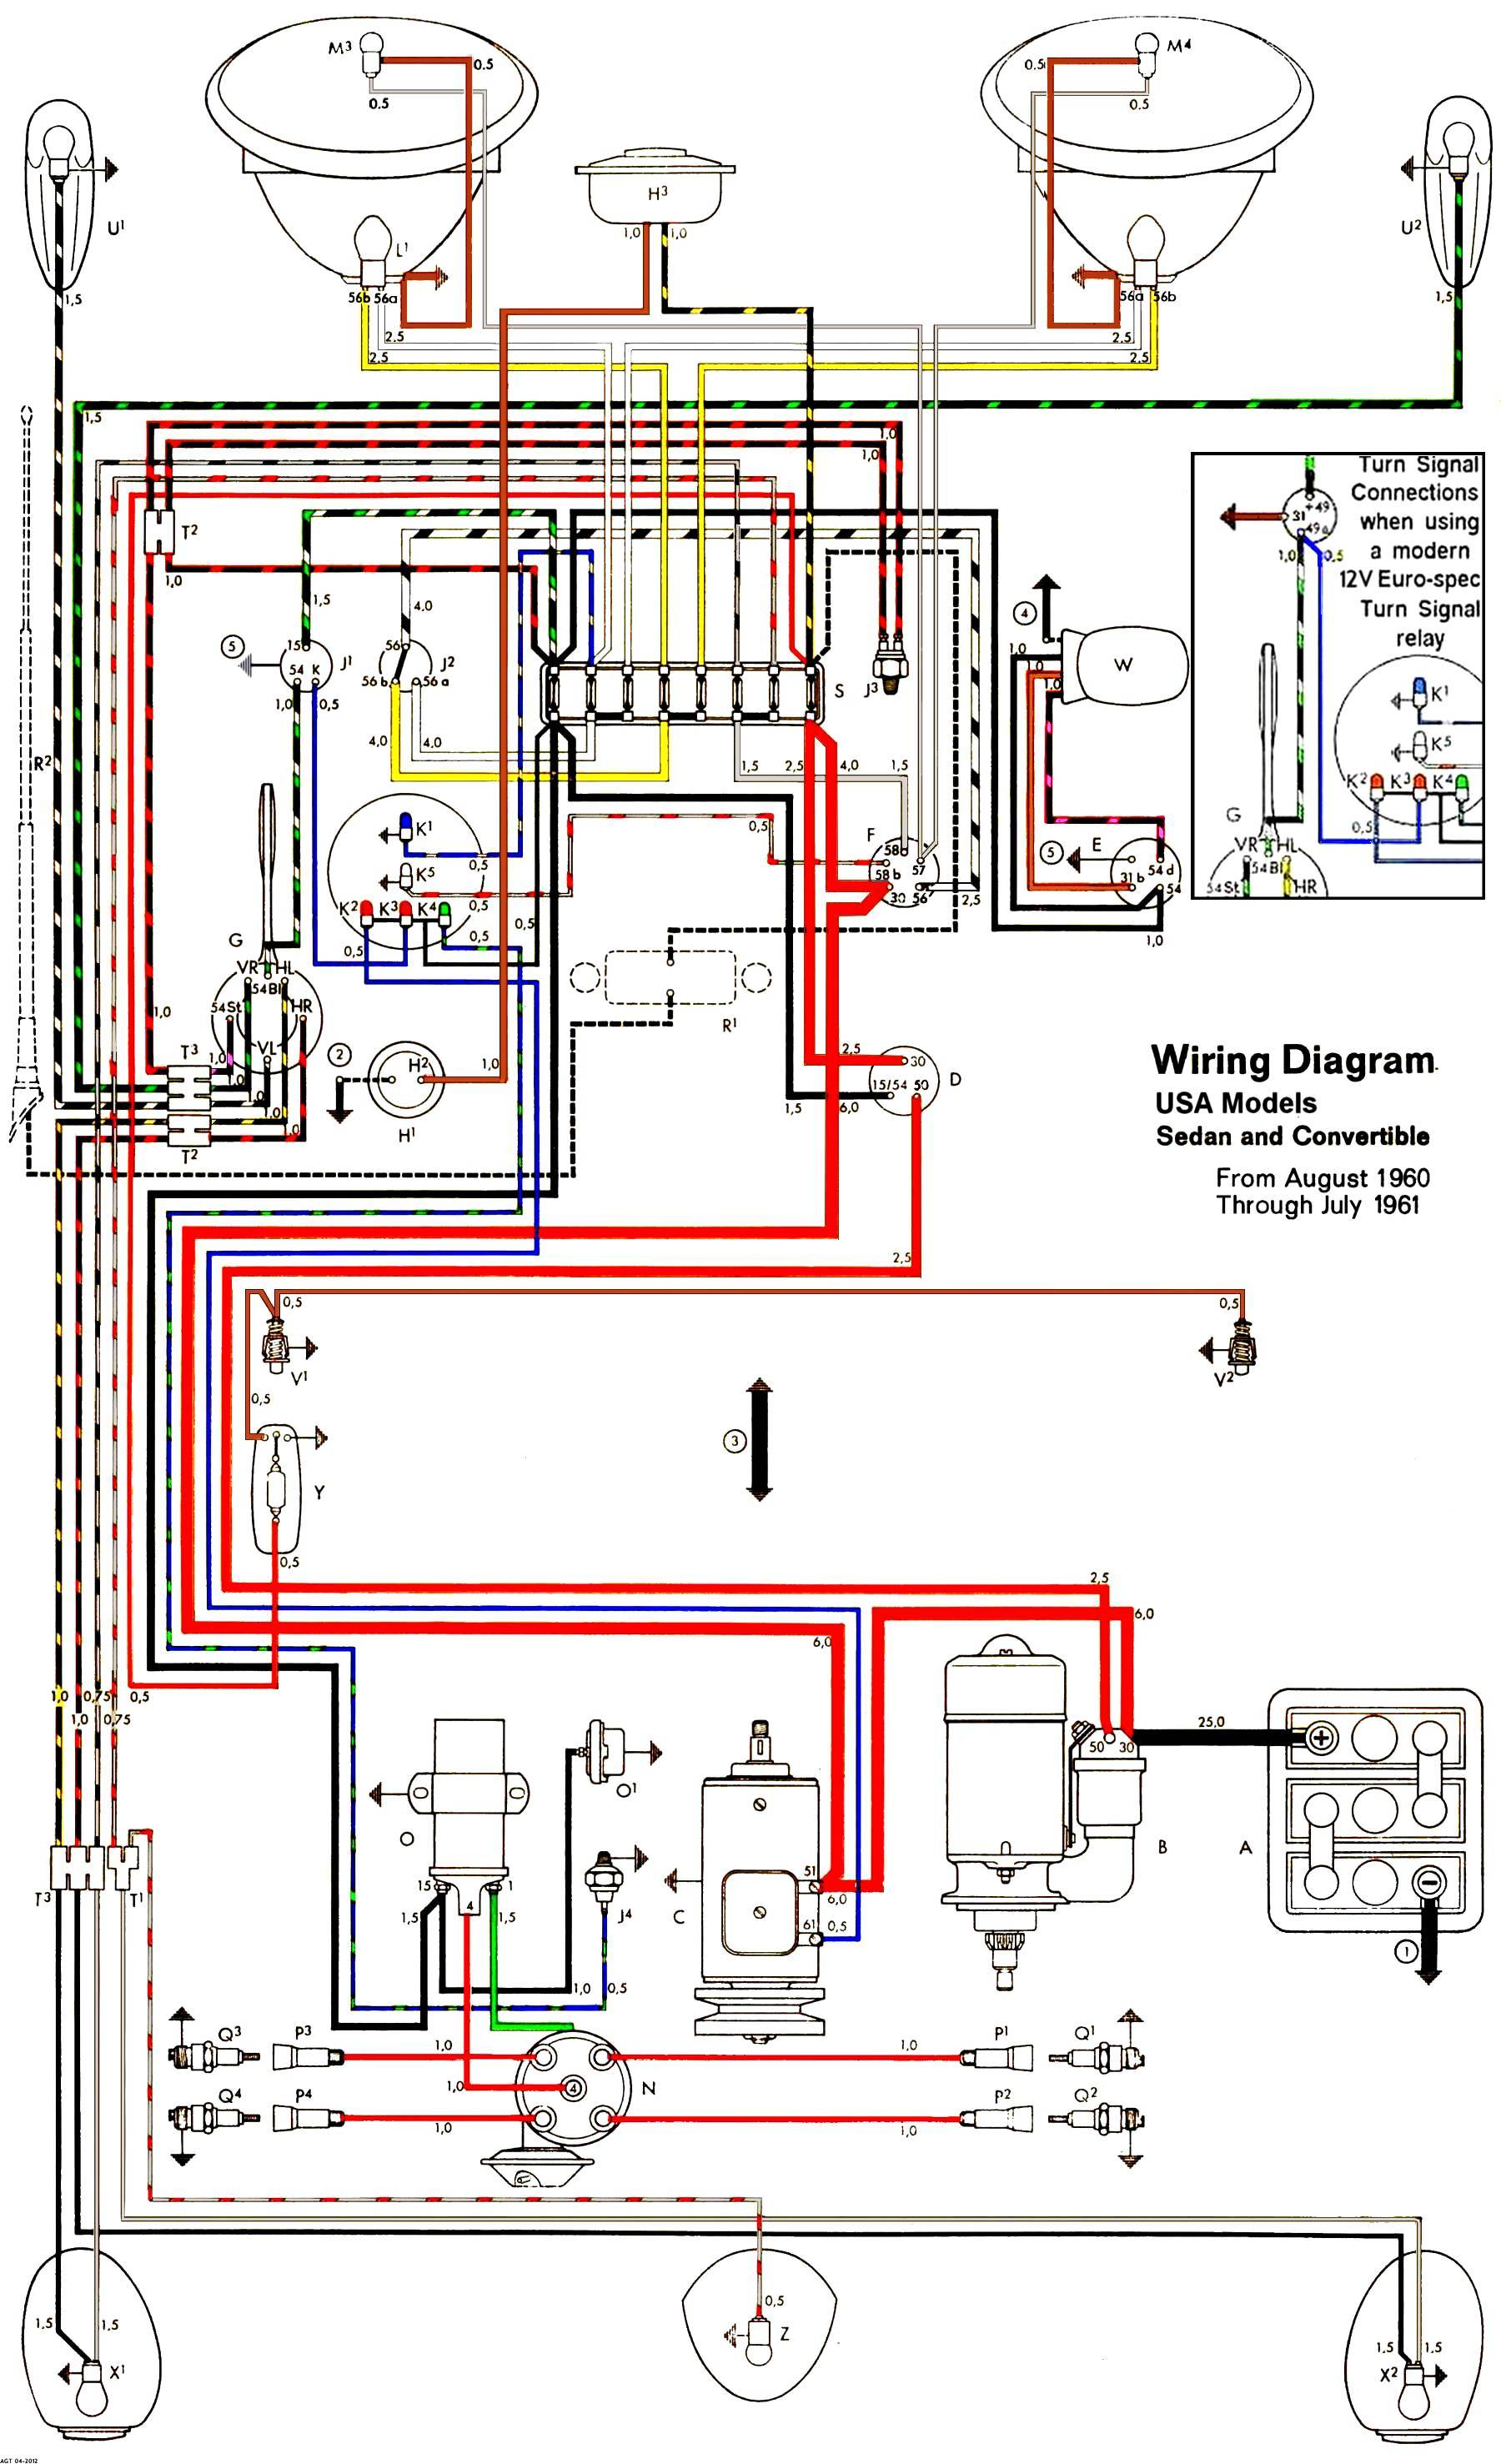 70 Vw Bug Turn Signal Wiring - Wiring Diagram Online Head Generator Wiring Diagram on pto wiring diagram, isolator wiring diagram, generator head exploded view, generator head capacitor, rc brushless motor wiring diagram, generator head cover, generator head operation, star wiring diagram, transfer switches wiring diagram, alternator head wiring diagram, washer wiring diagram, lifan generators wiring diagram, portable generators wiring diagram, hour meter wiring diagram, electric winch wiring diagram, whole house generators wiring diagram, stihl chainsaw wiring diagram,